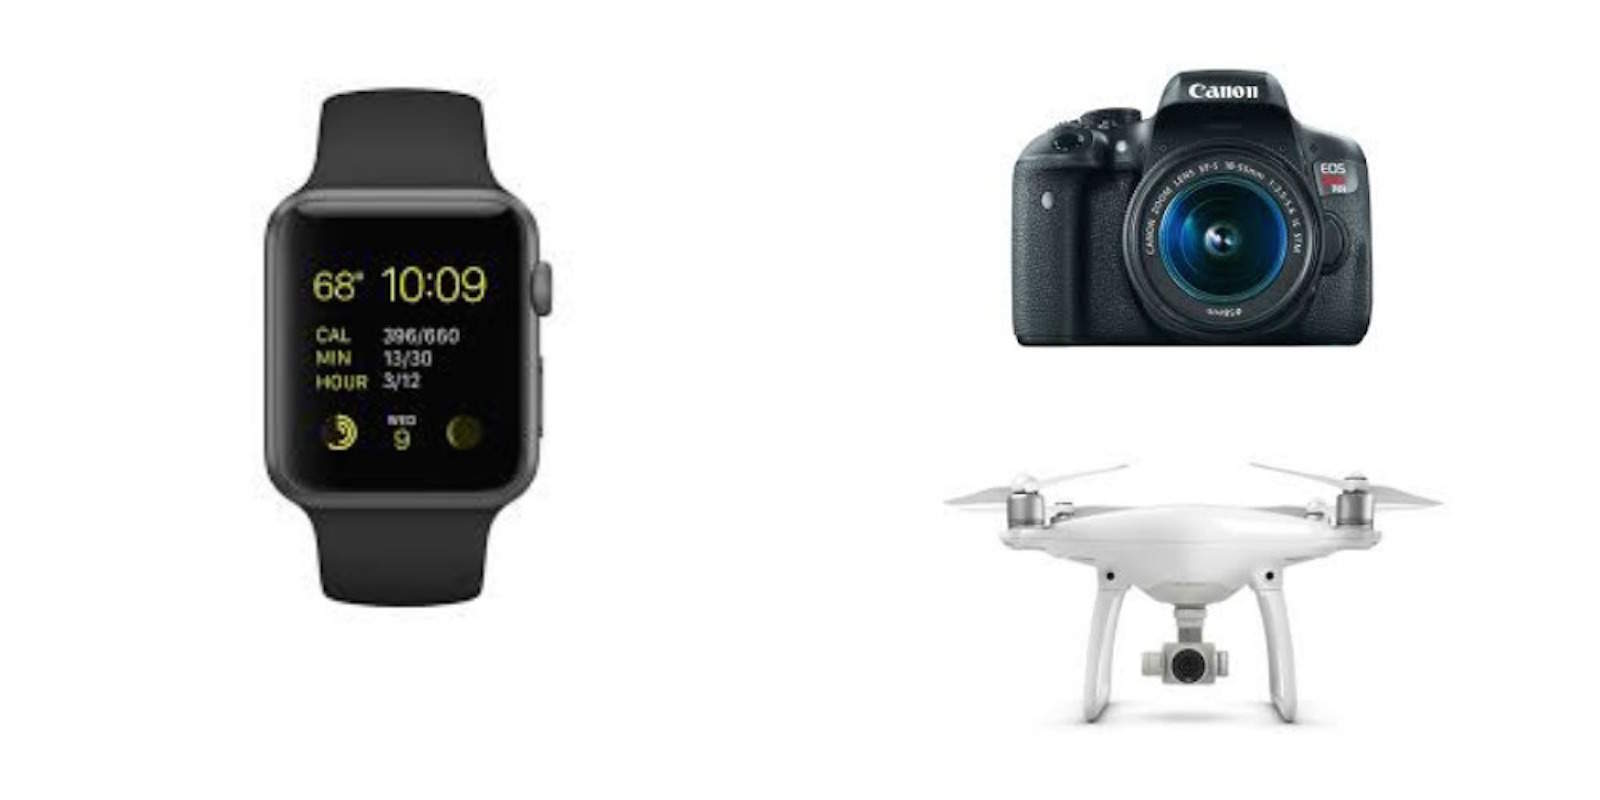 Deals on Apple Watch Sport, the DJI Phantom 4 drone, and a Canon camera highlight this week's best of the internet.